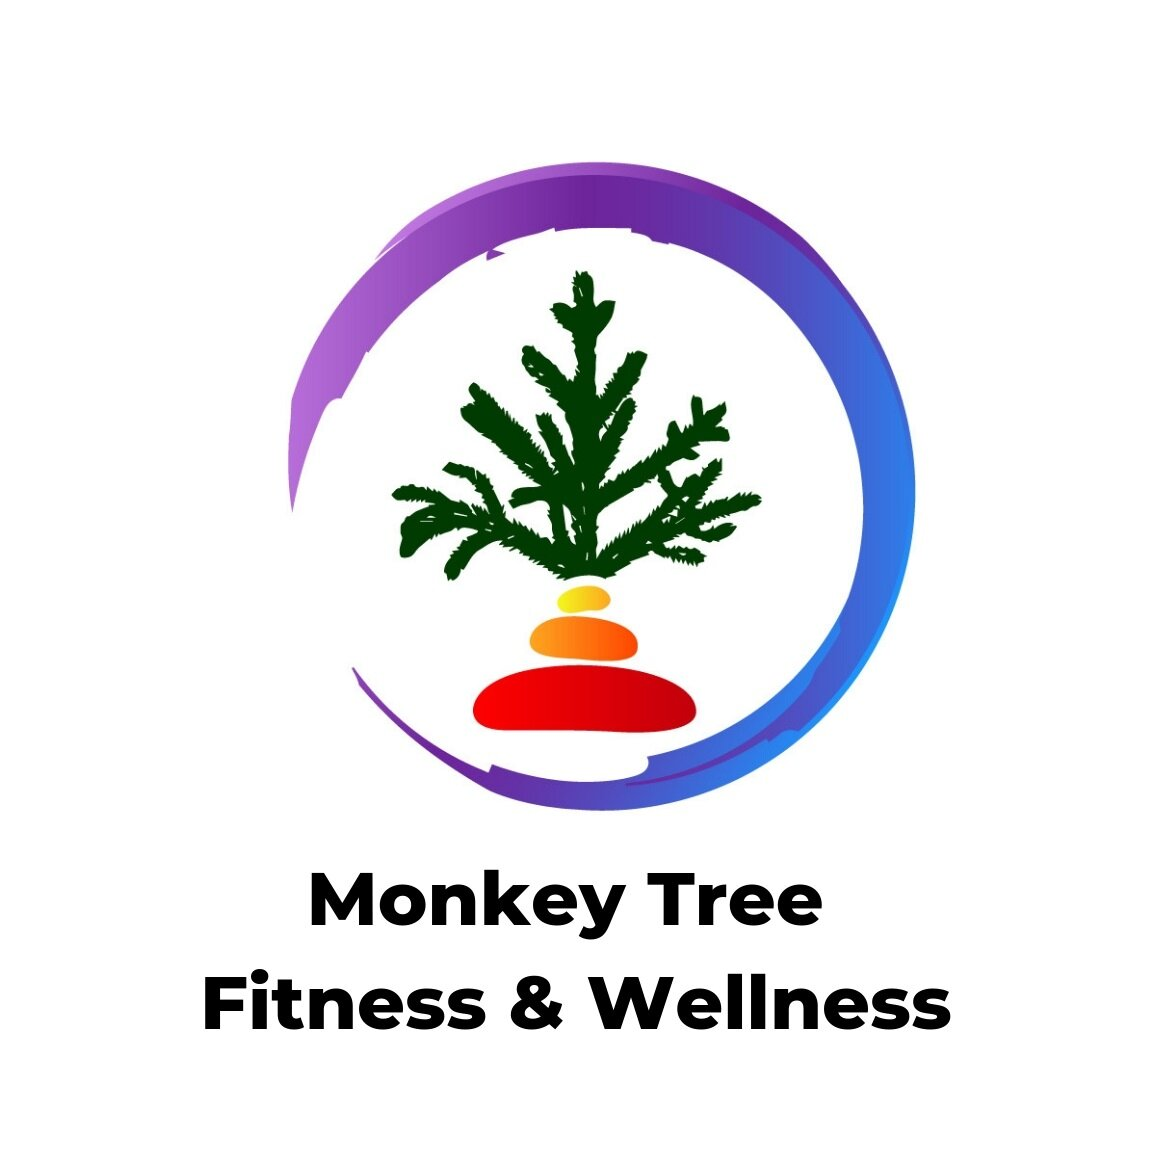 MONKEY TREE FITNESS & WELLNESS